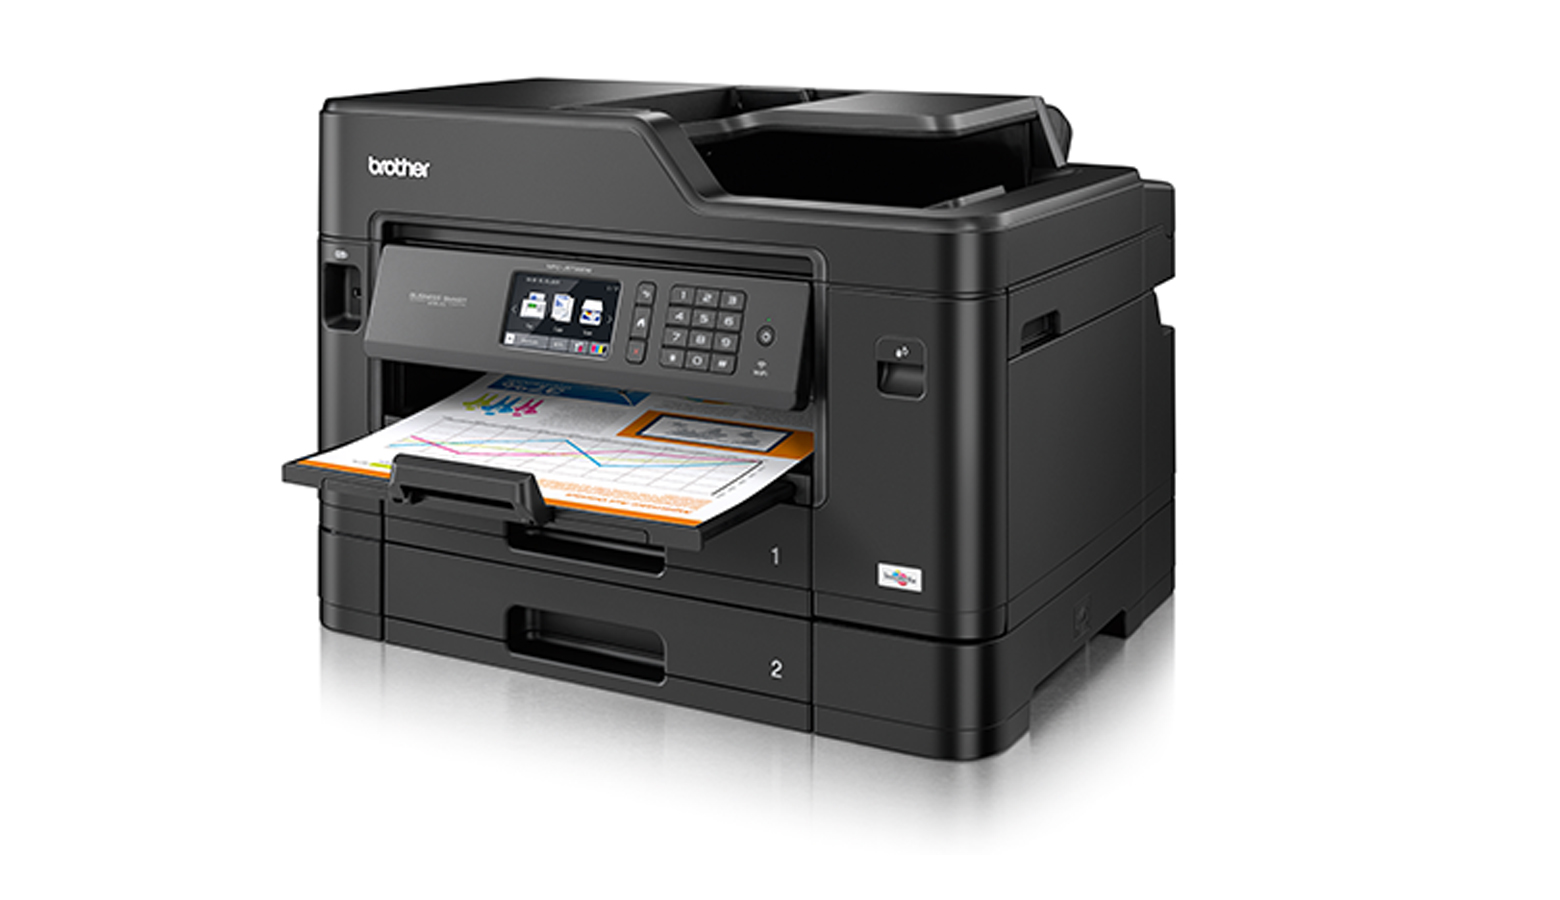 Brother's new business smart inkjet printer range with wireless